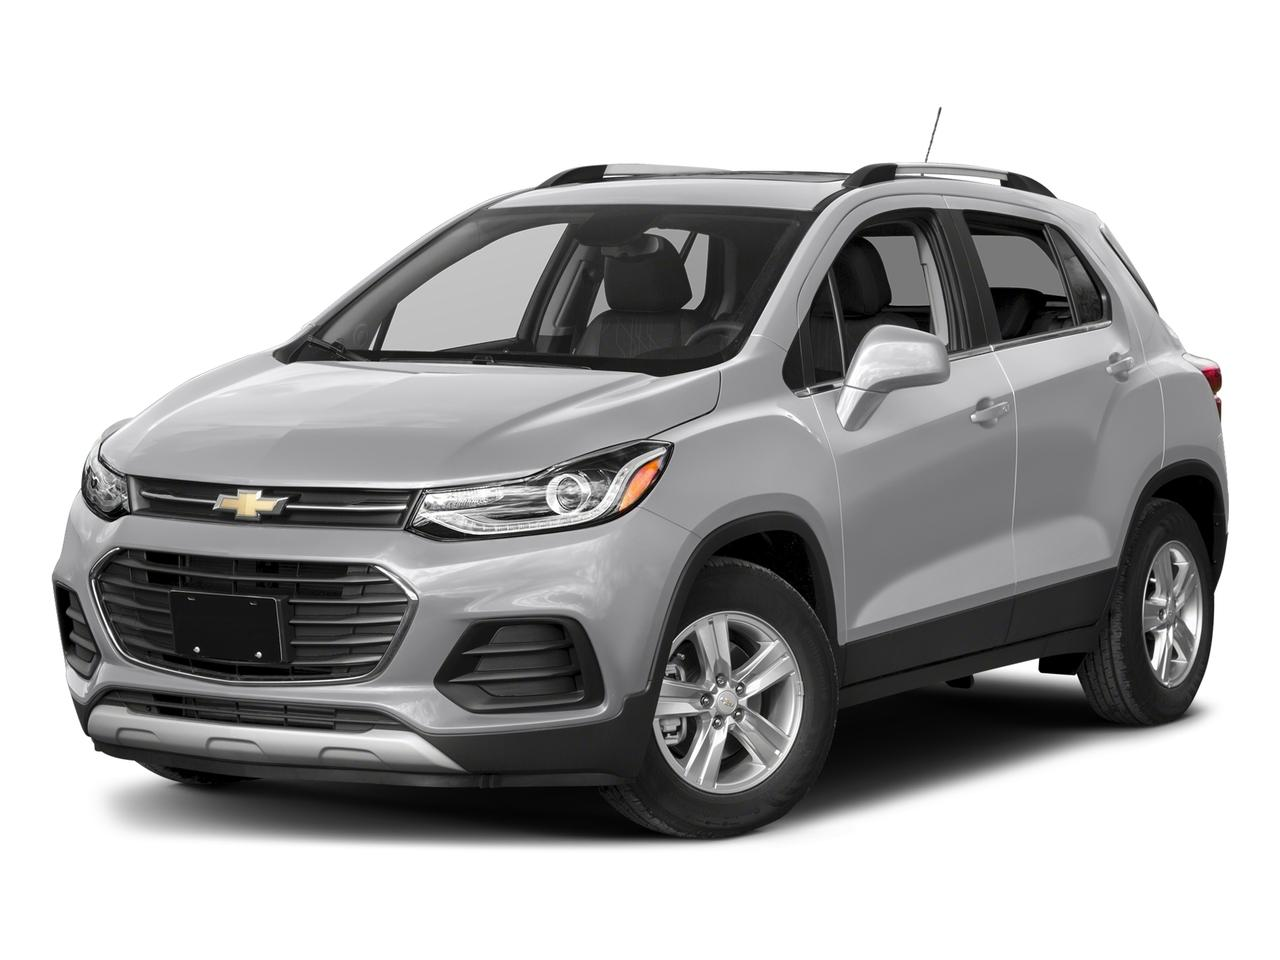 2017 Chevrolet Trax Vehicle Photo in Annapolis, MD 21401